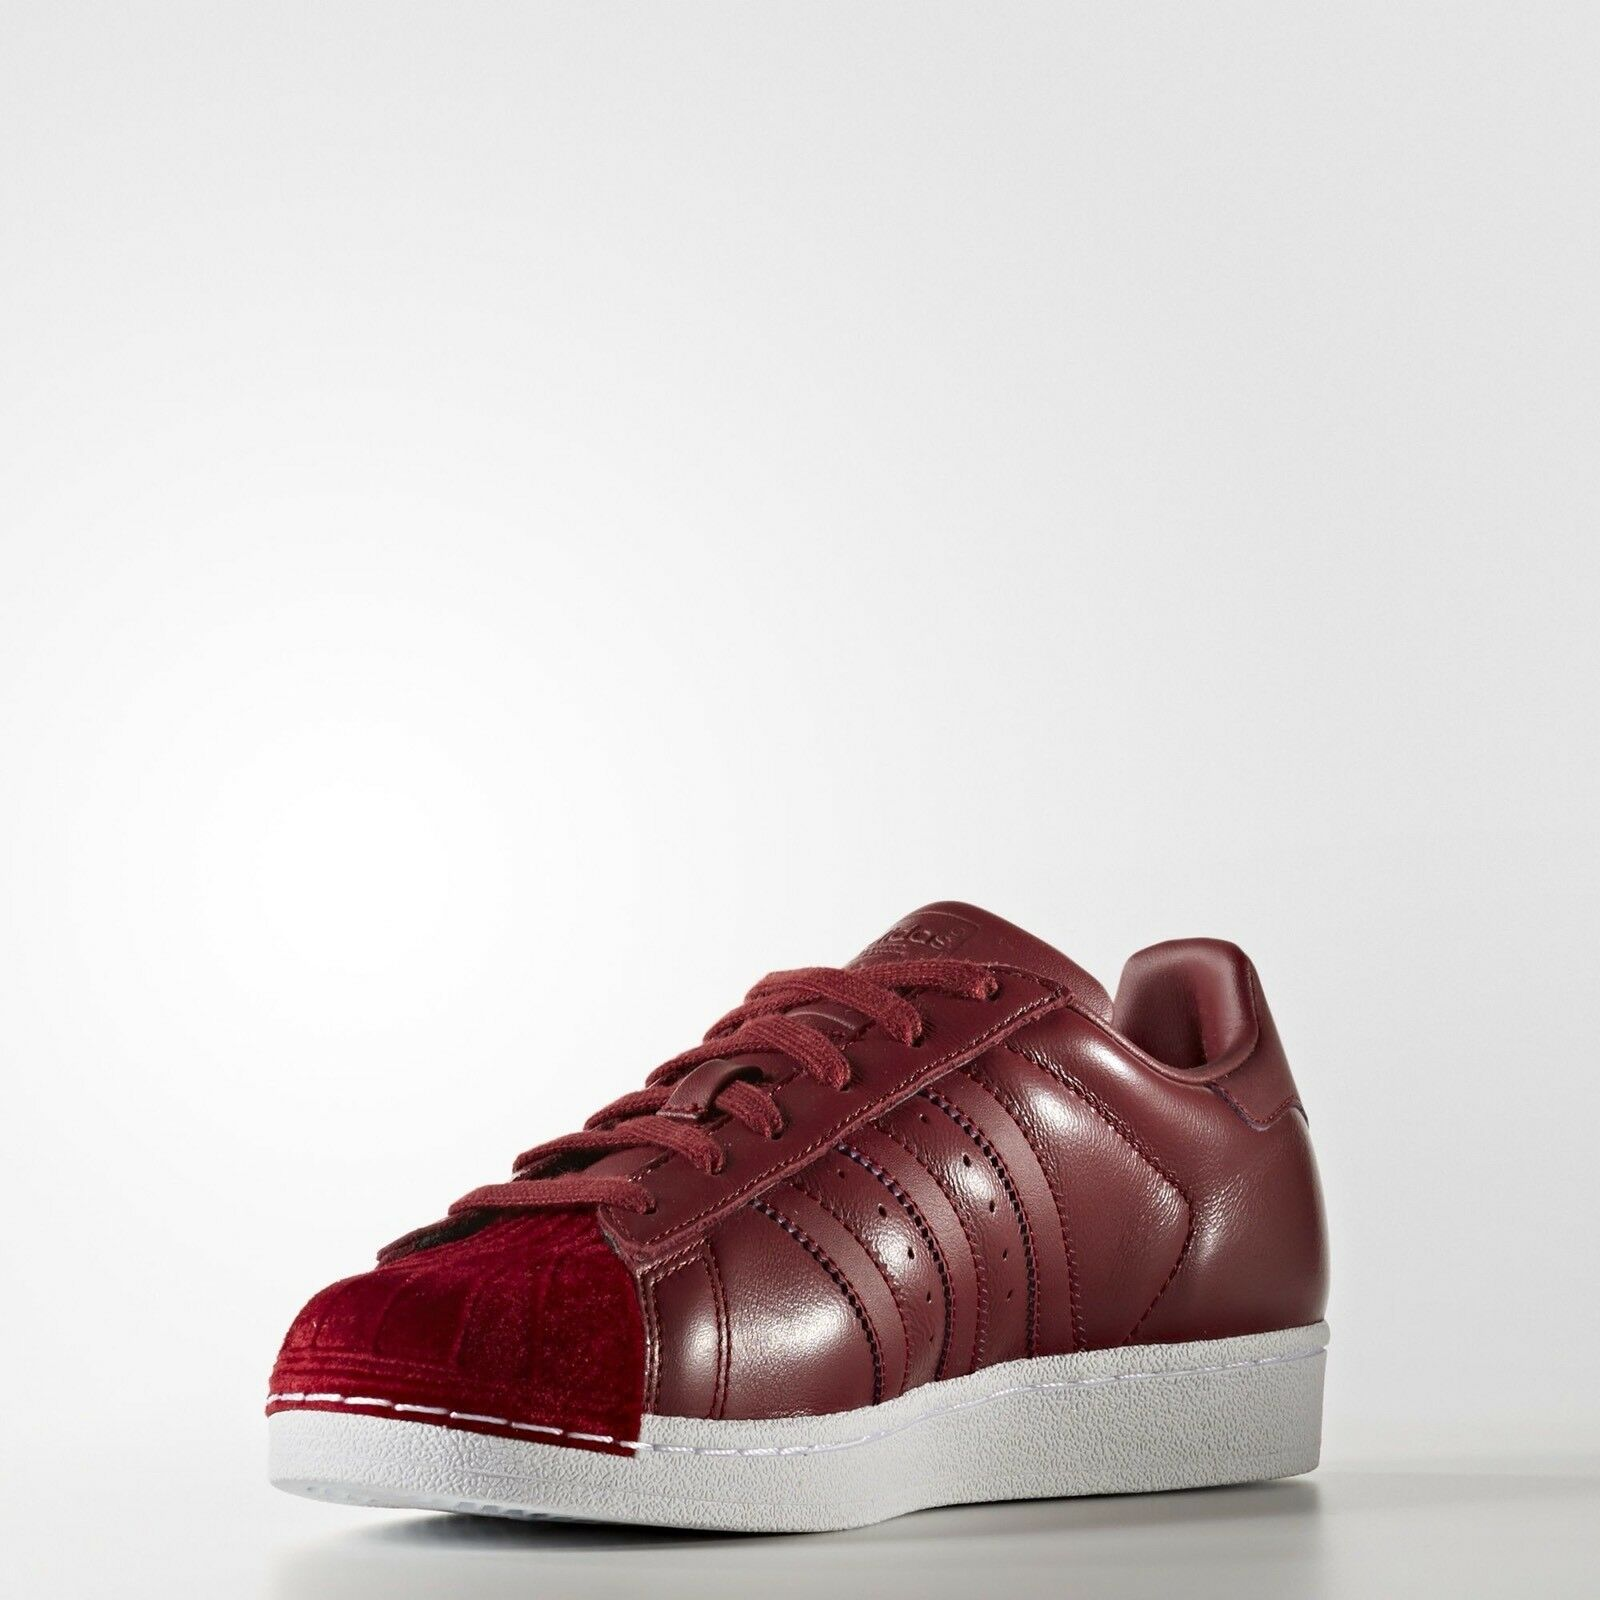 1710 ADIDAS SUPERSTAR BZ0644 COLLEGIATE BURGUNDY WOMEN'S RUNNING SHOES Special limited time